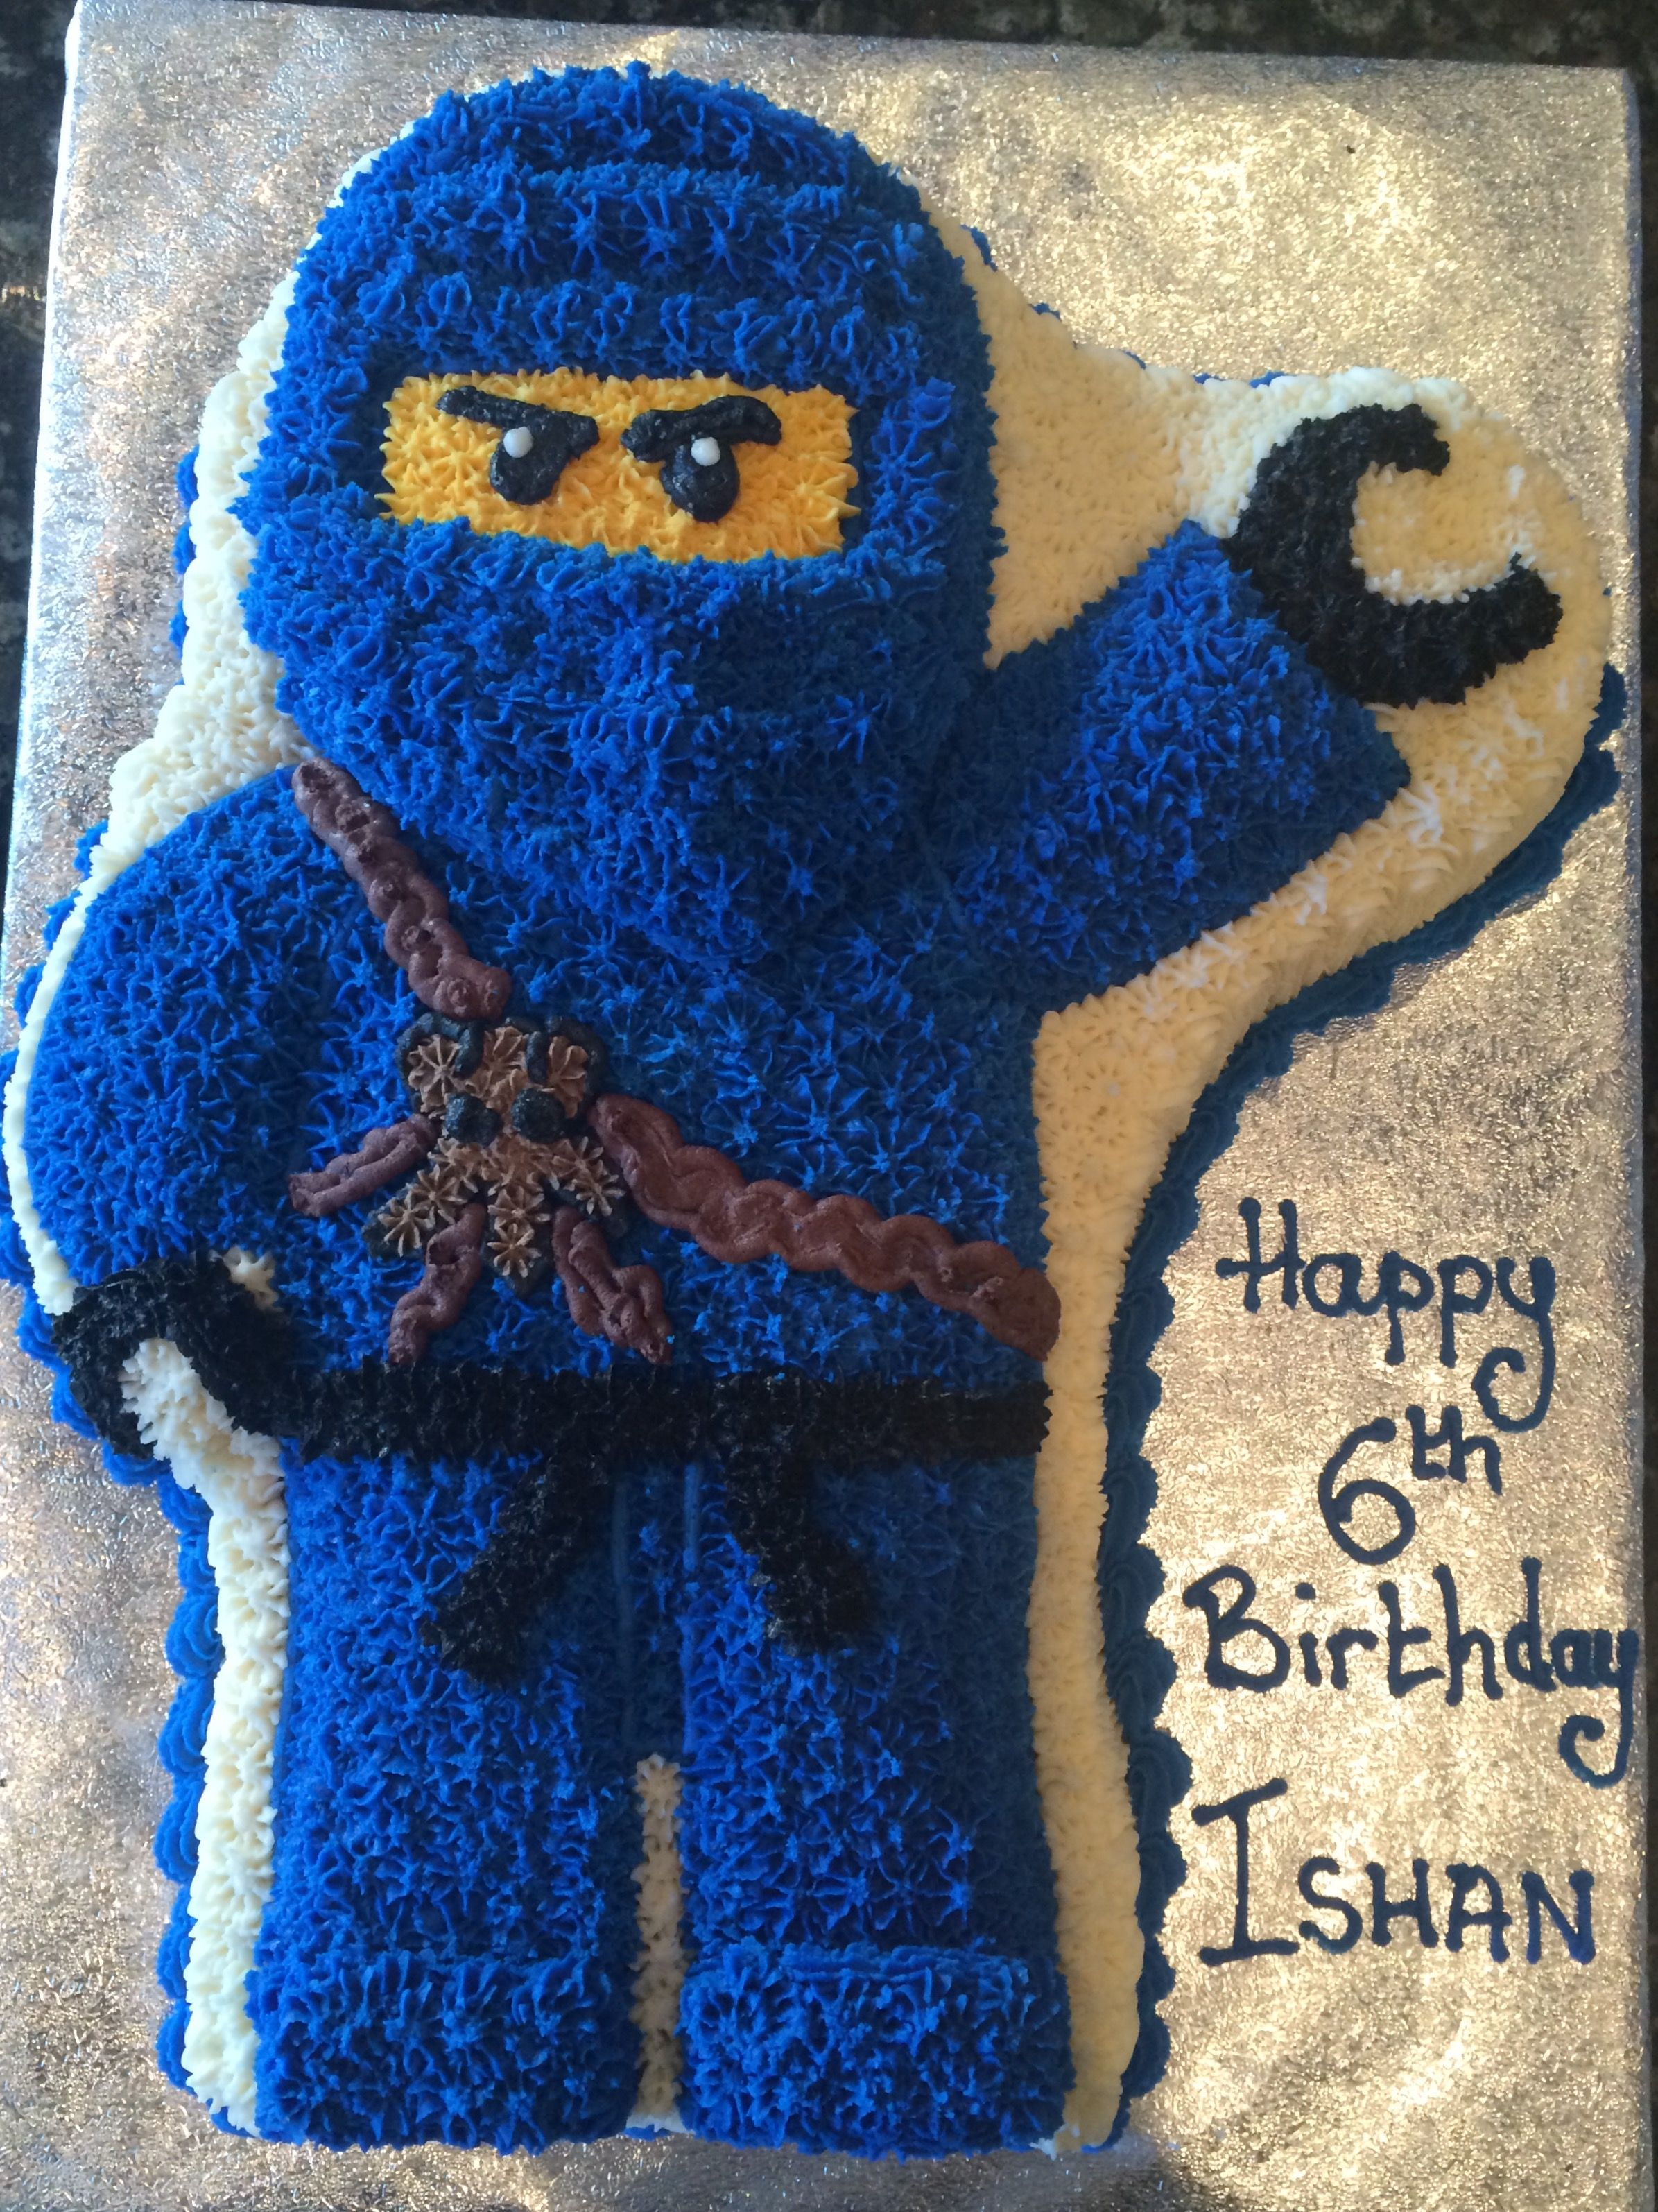 Jay Blue Ninjago Cake With Butter Cream Icing